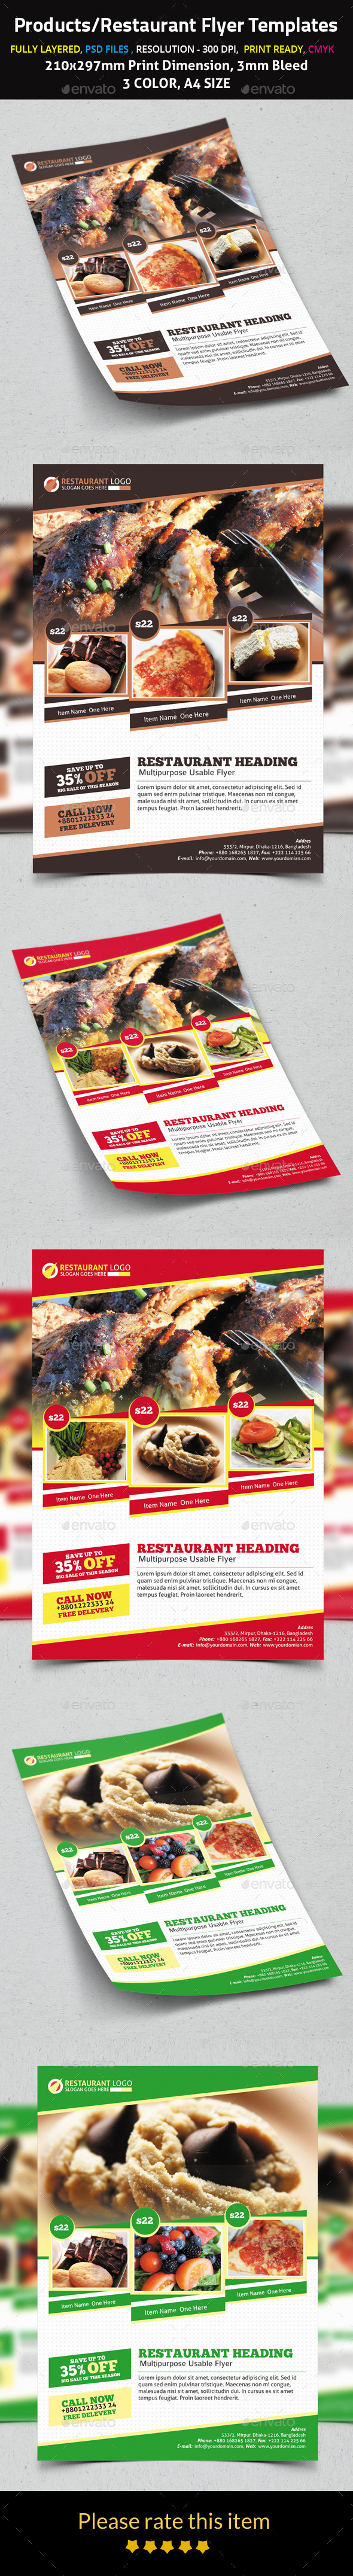 Products/Restaurant Flyer Templates - Flyers Print Templates